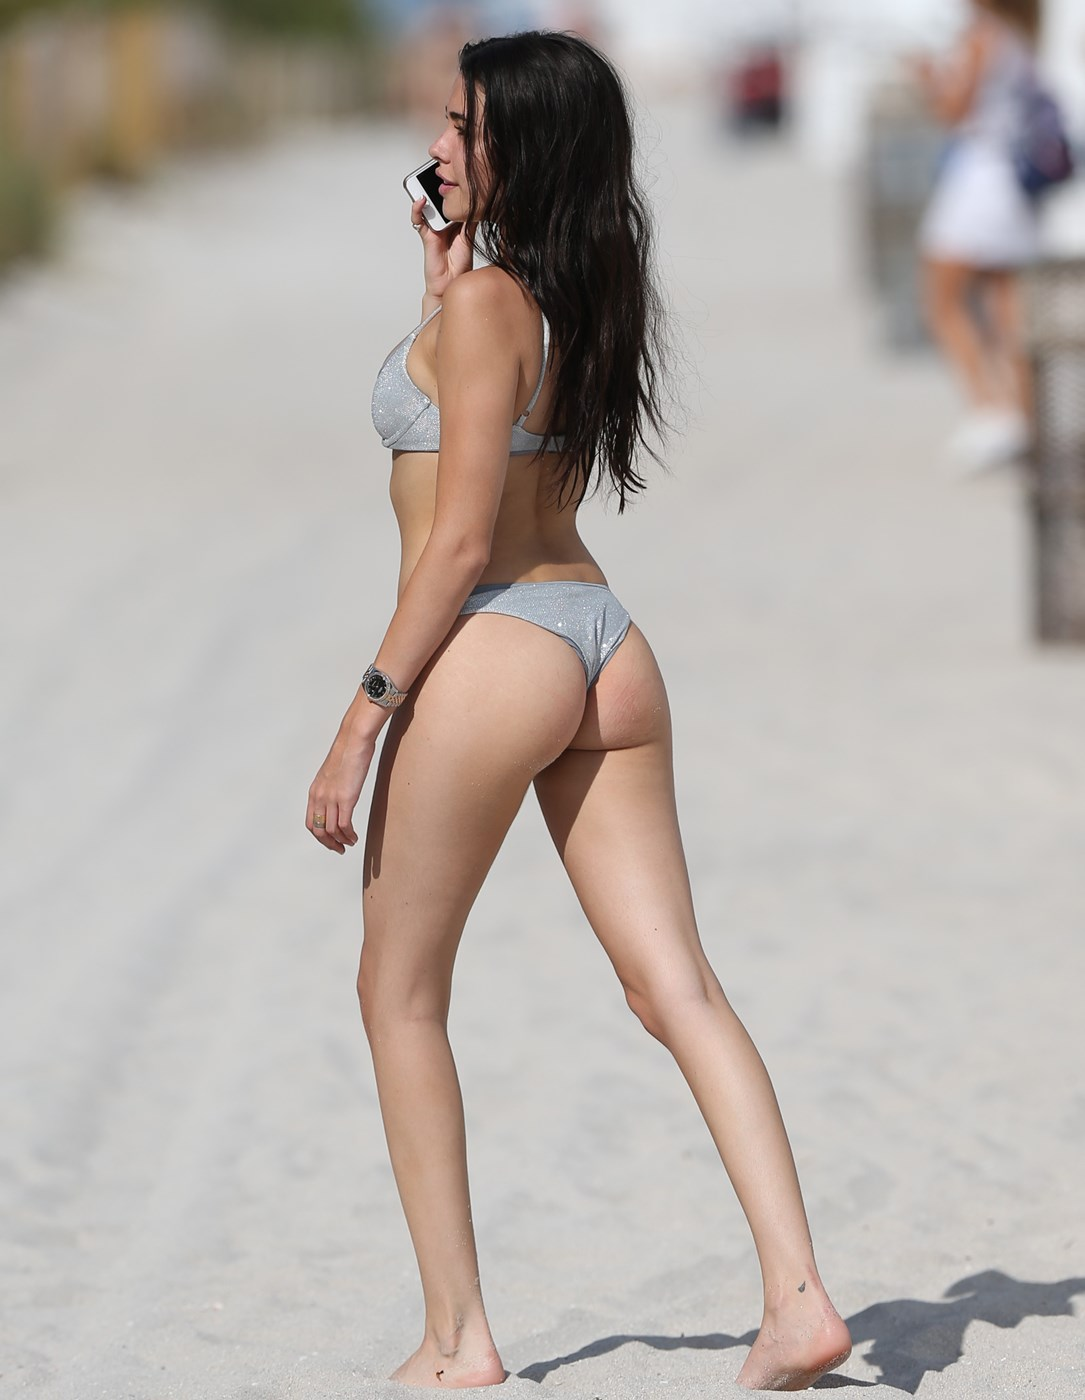 Madison Beer nude leaked photos uncensored. Gallery - 2